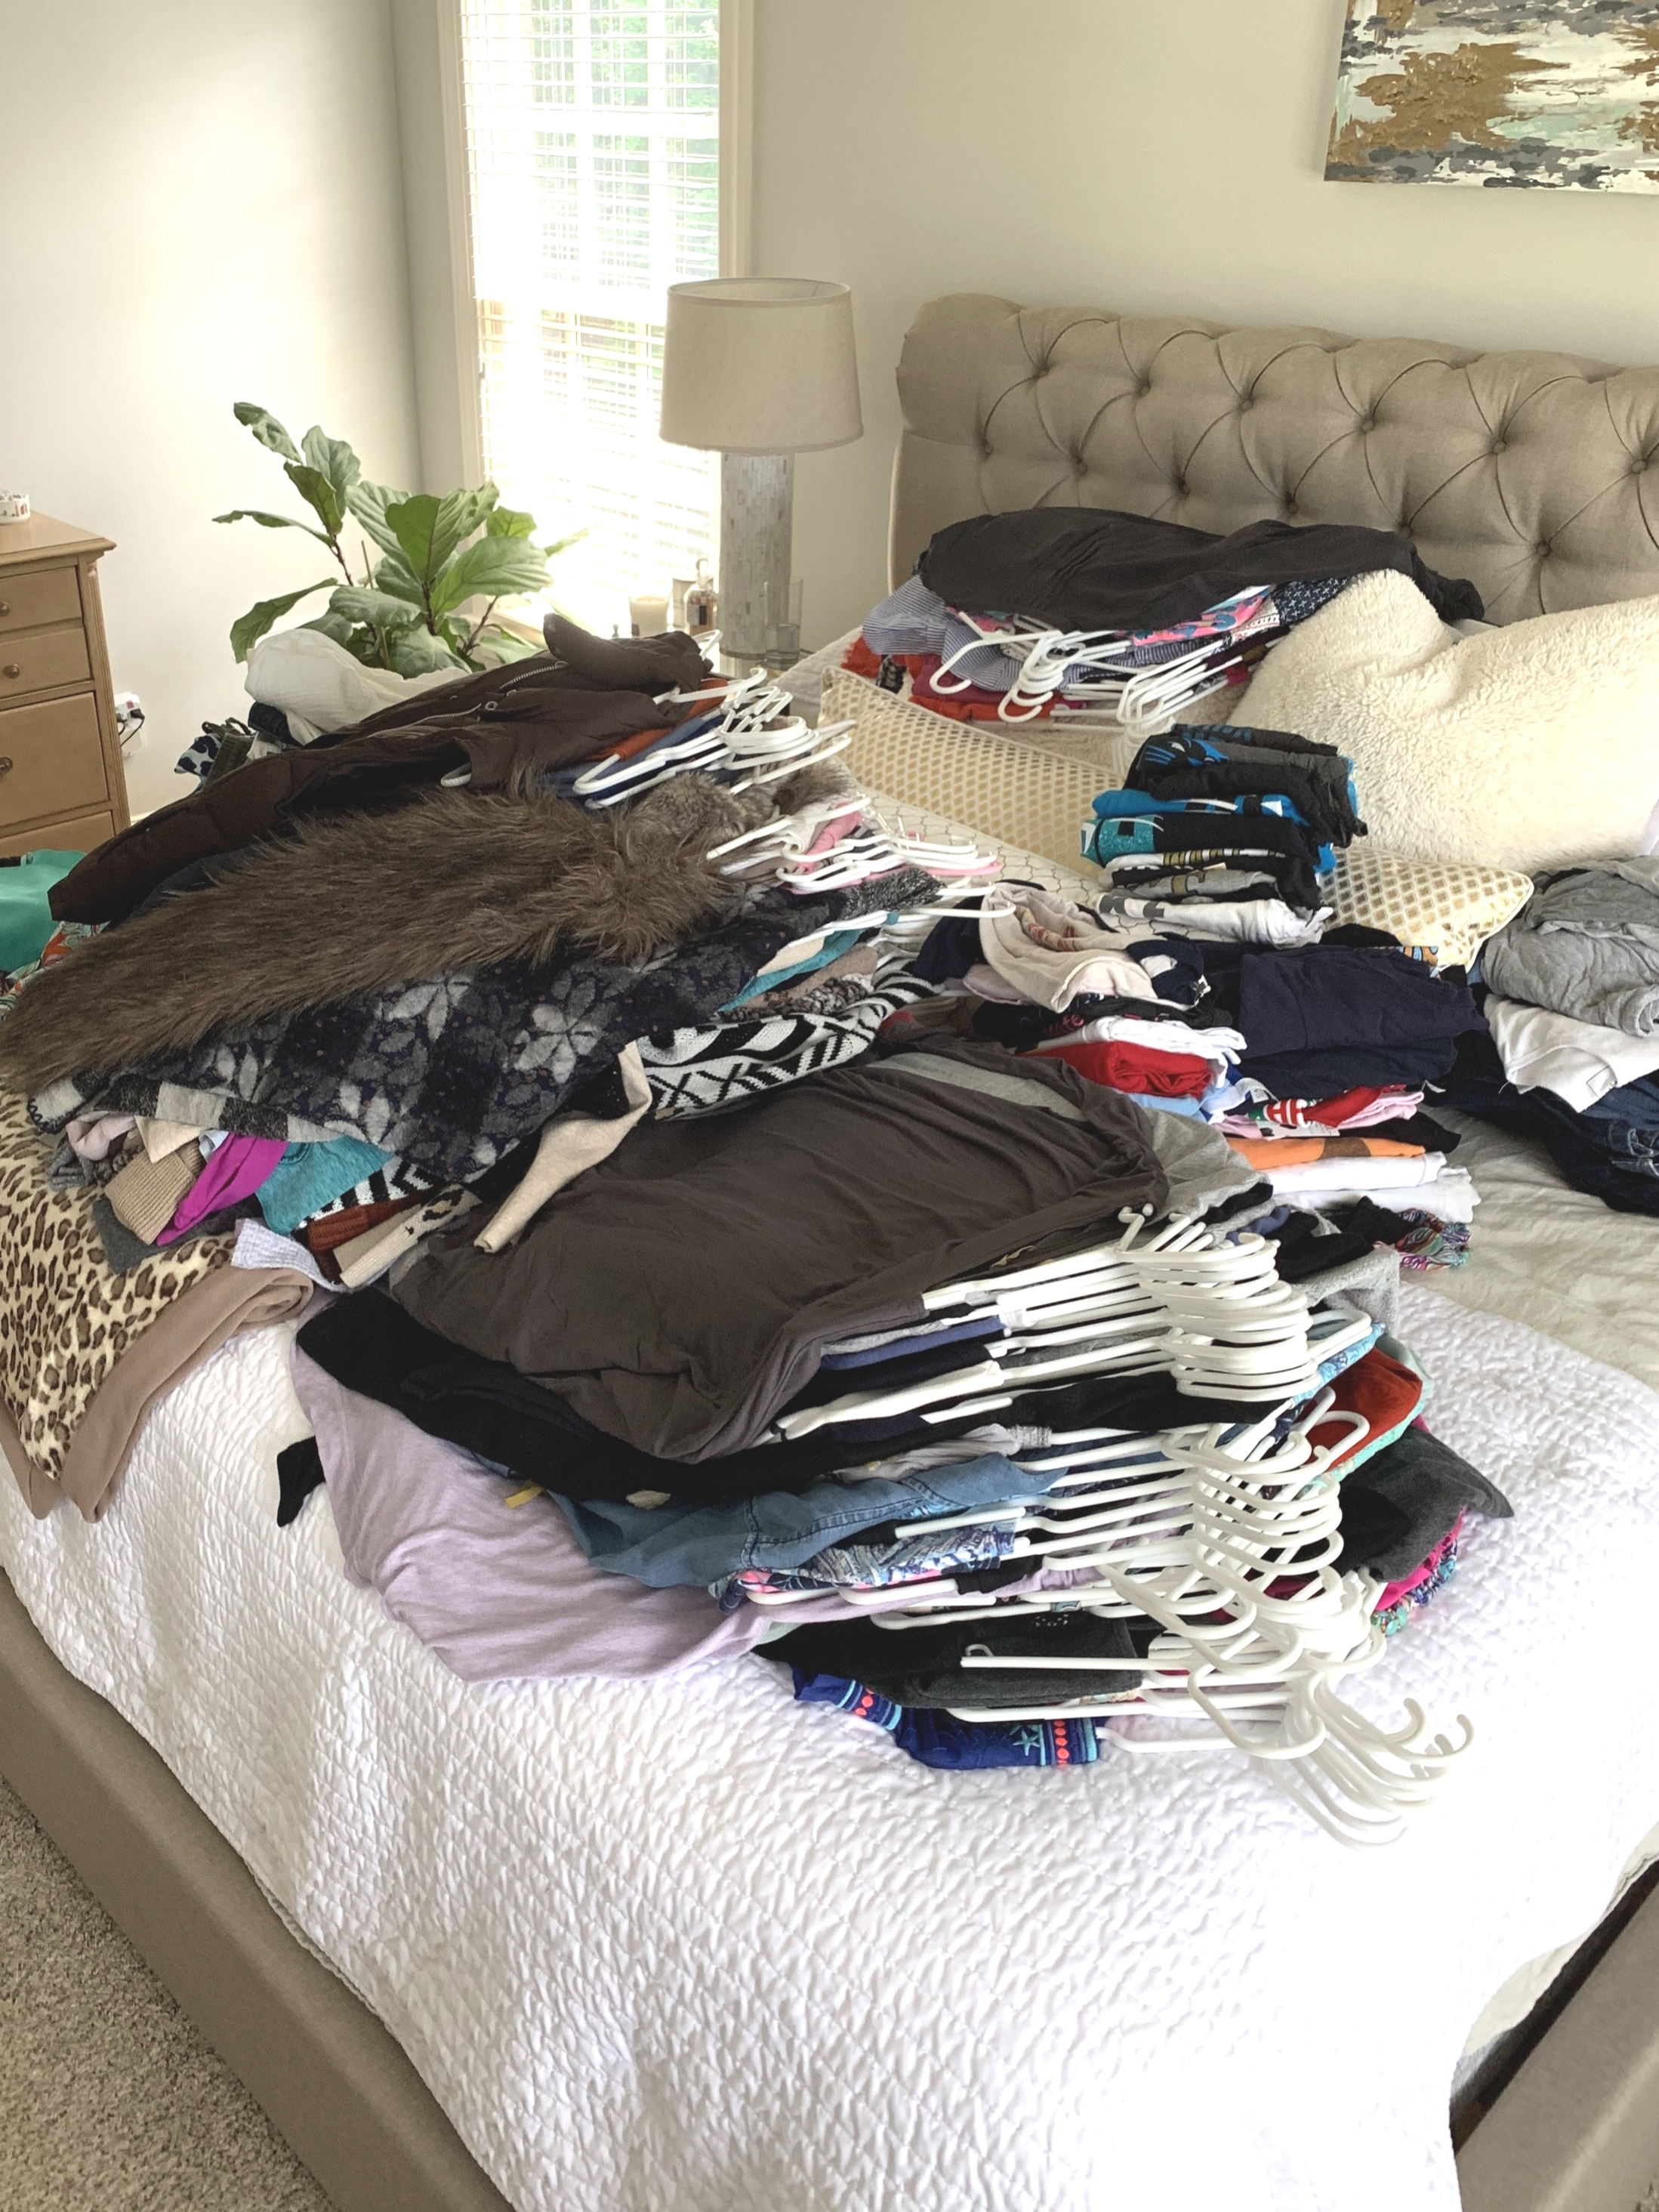 Mountain of clothes - this was taken when we were about halfway done!